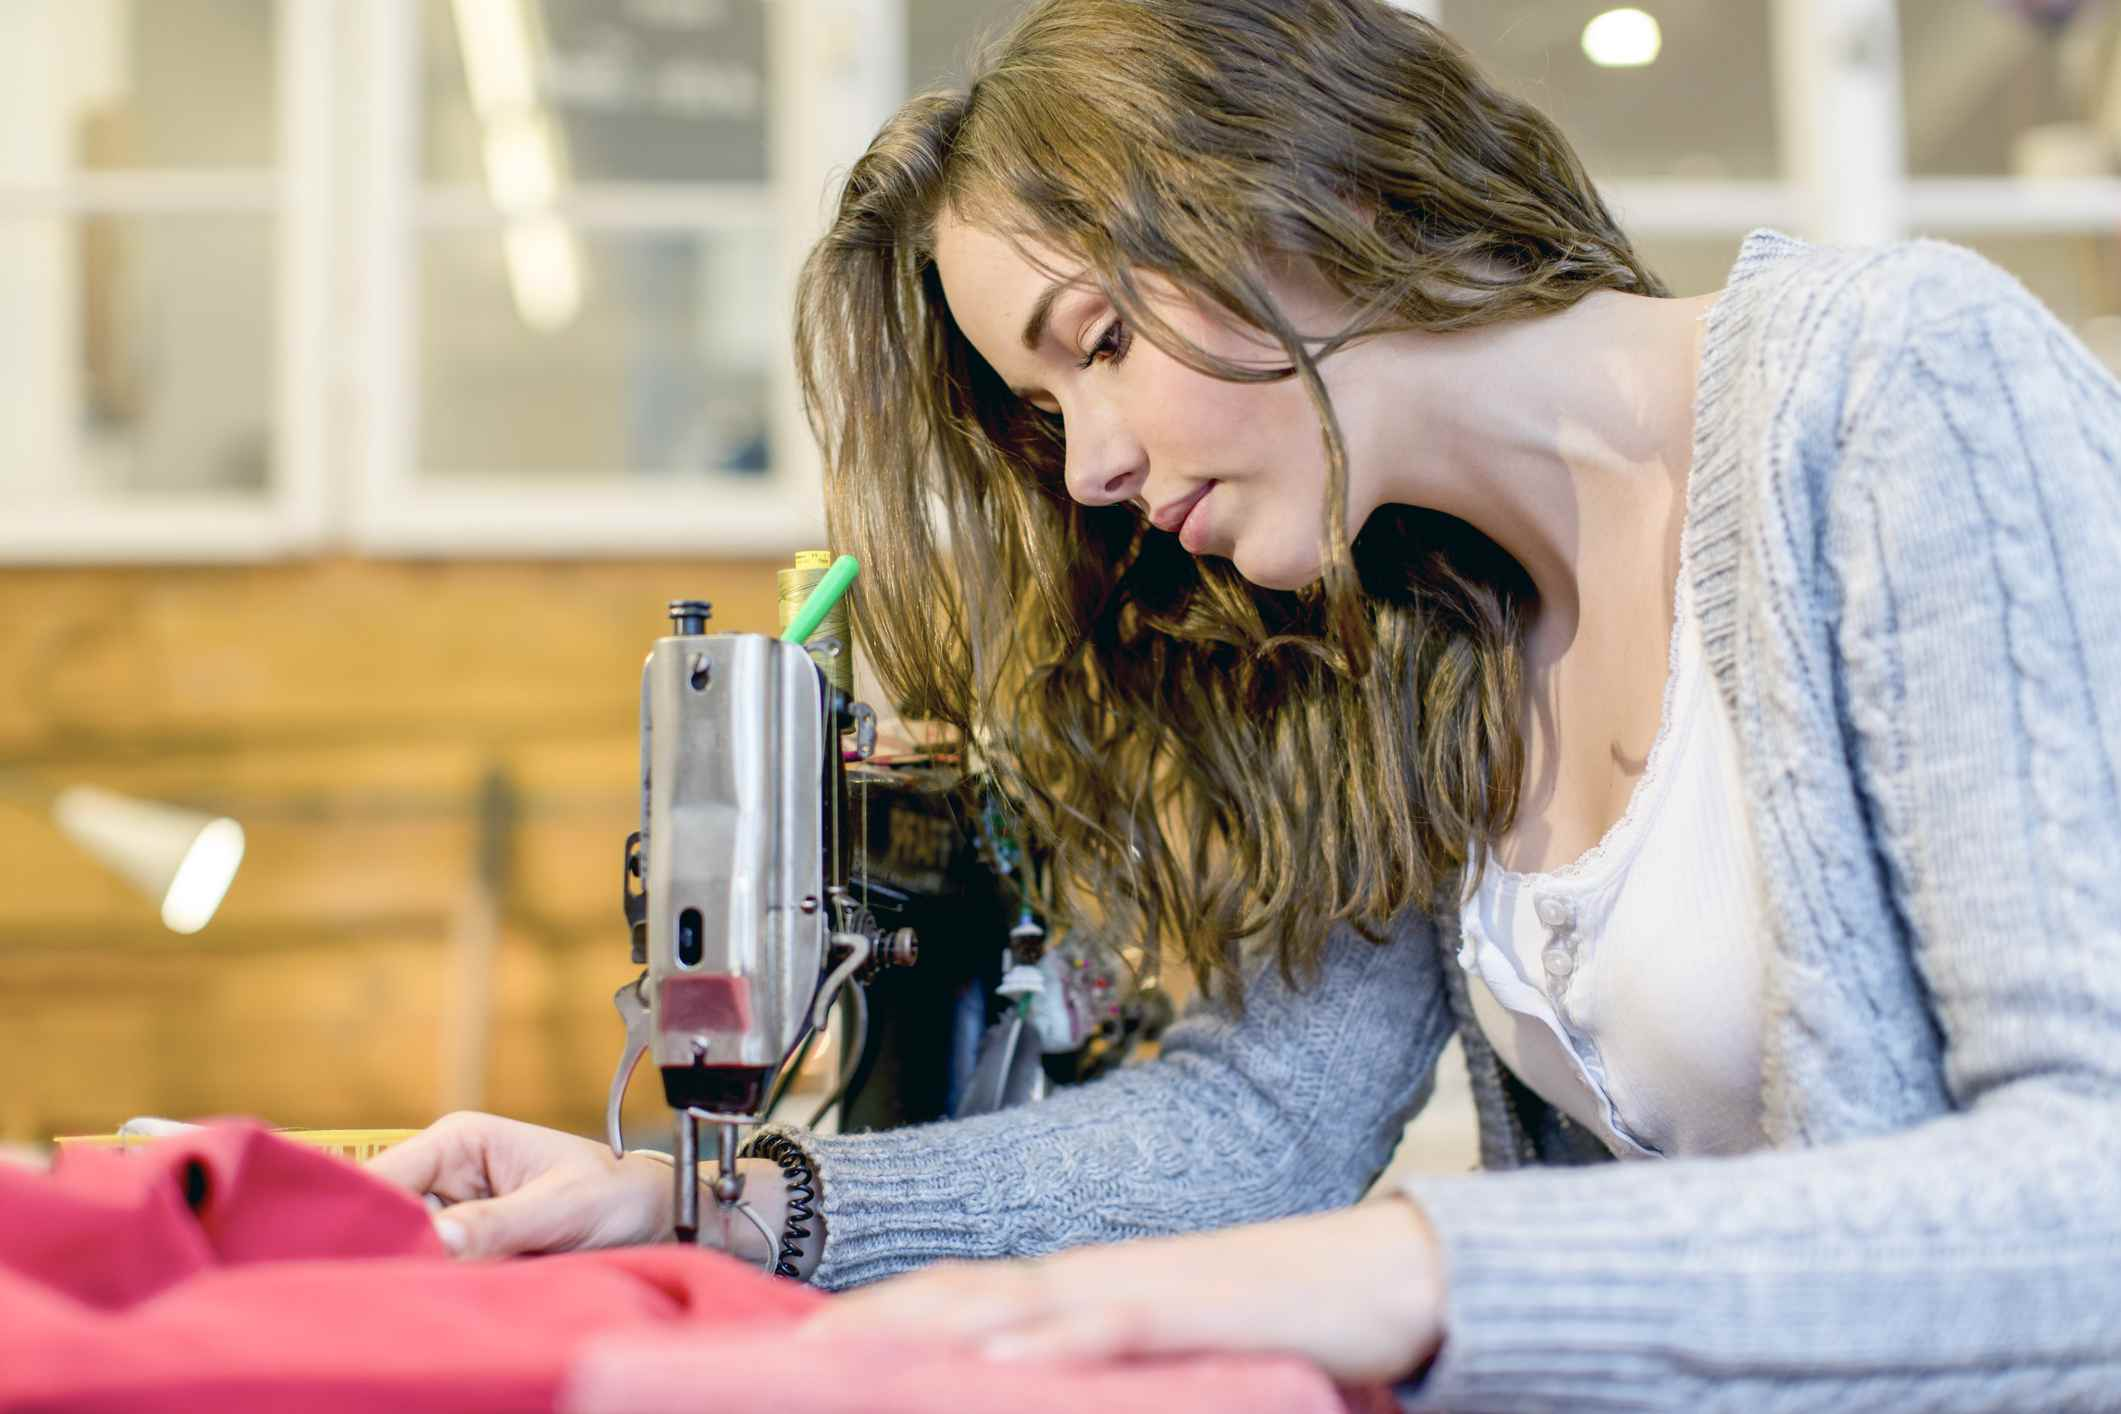 A young seamstress works behind her sewing machine.